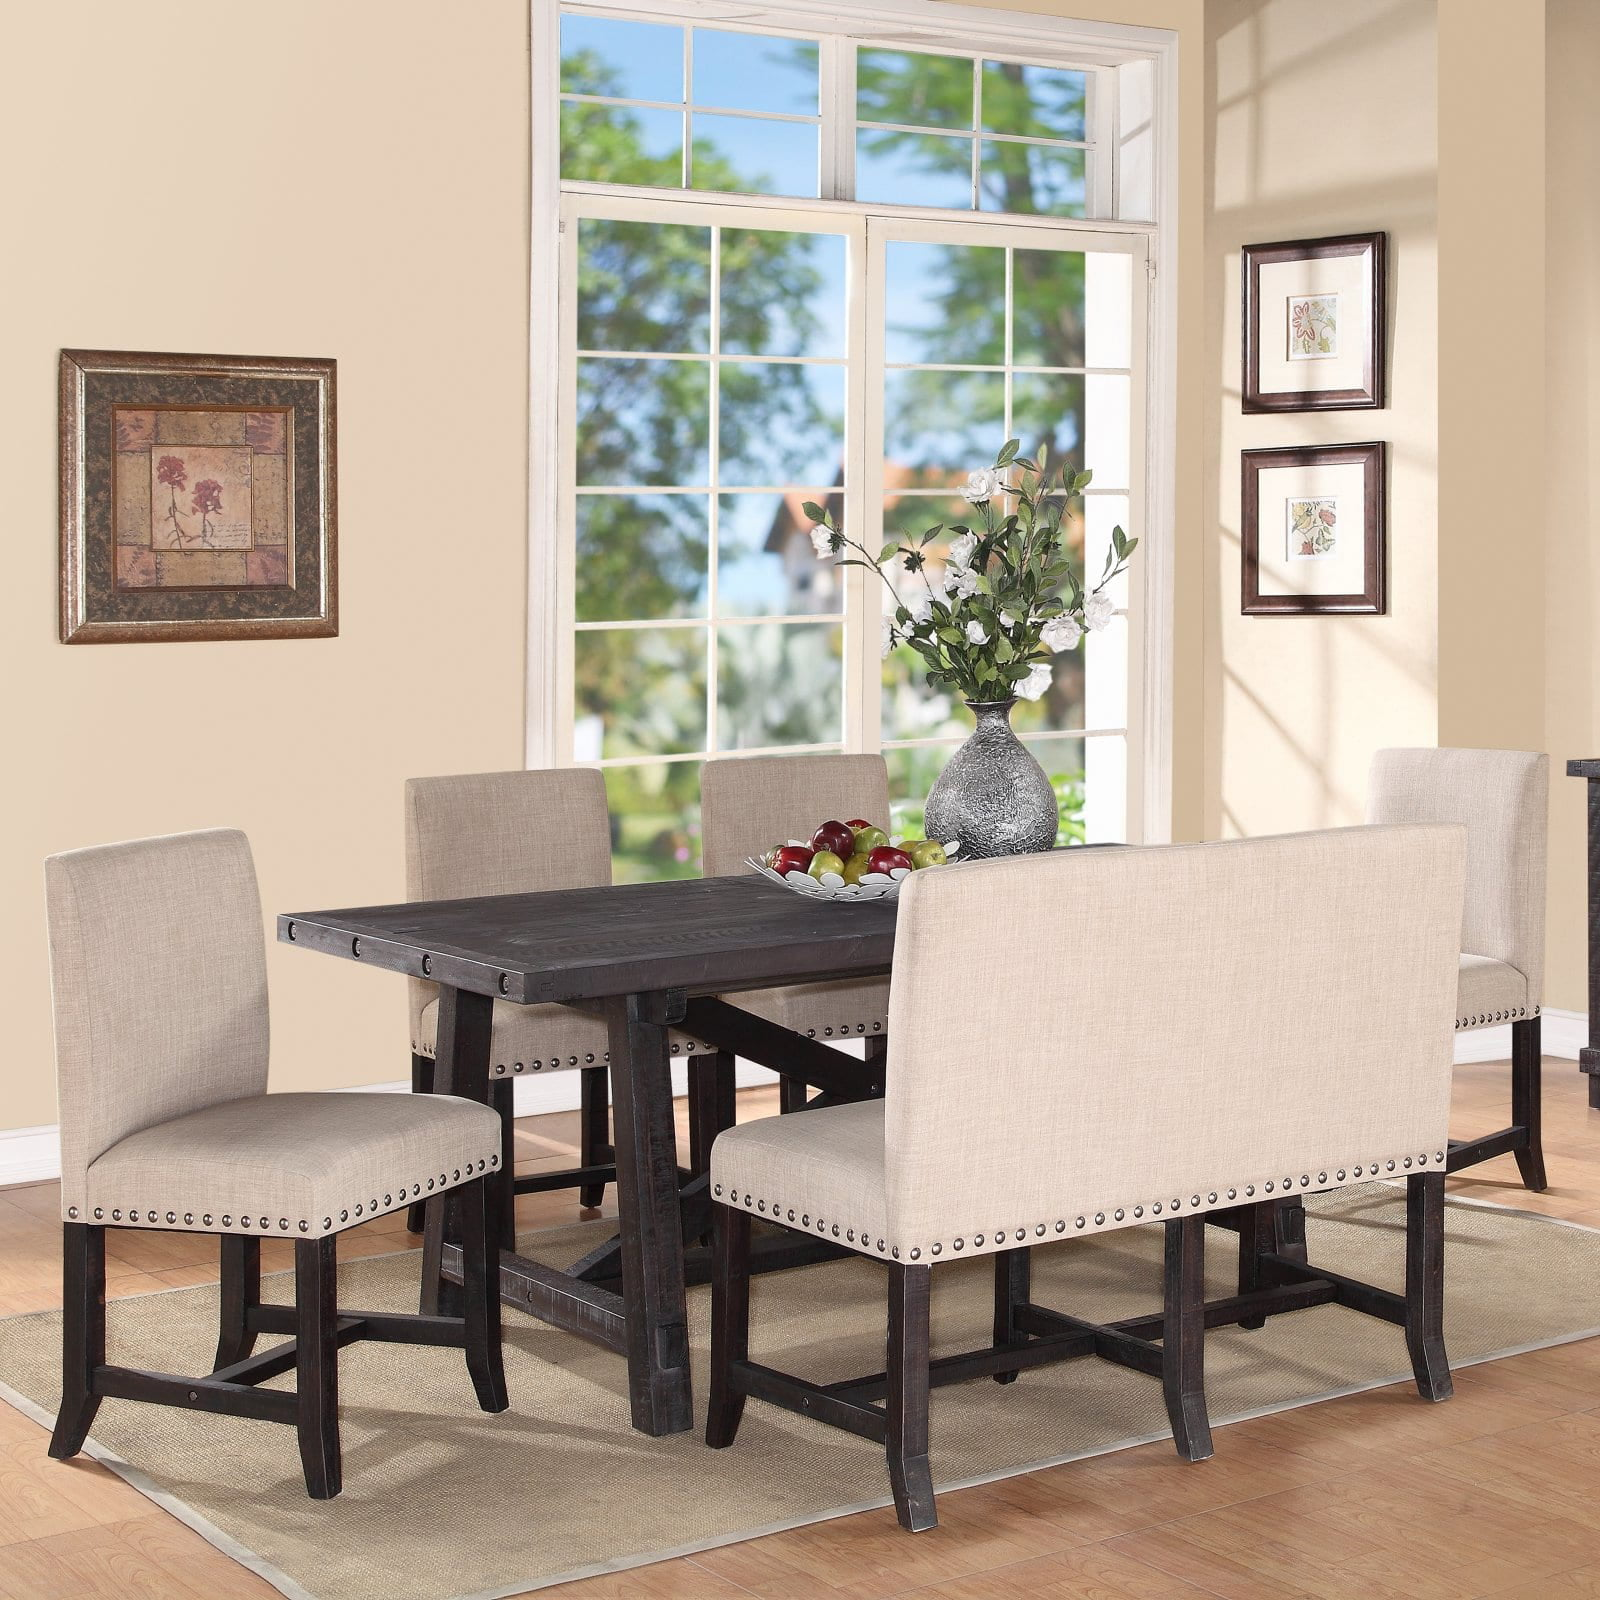 Modus Yosemite 6 Piece Rectangular Dining Table Set With Upholstered Chairs And Settee Walmart Com Walmart Com